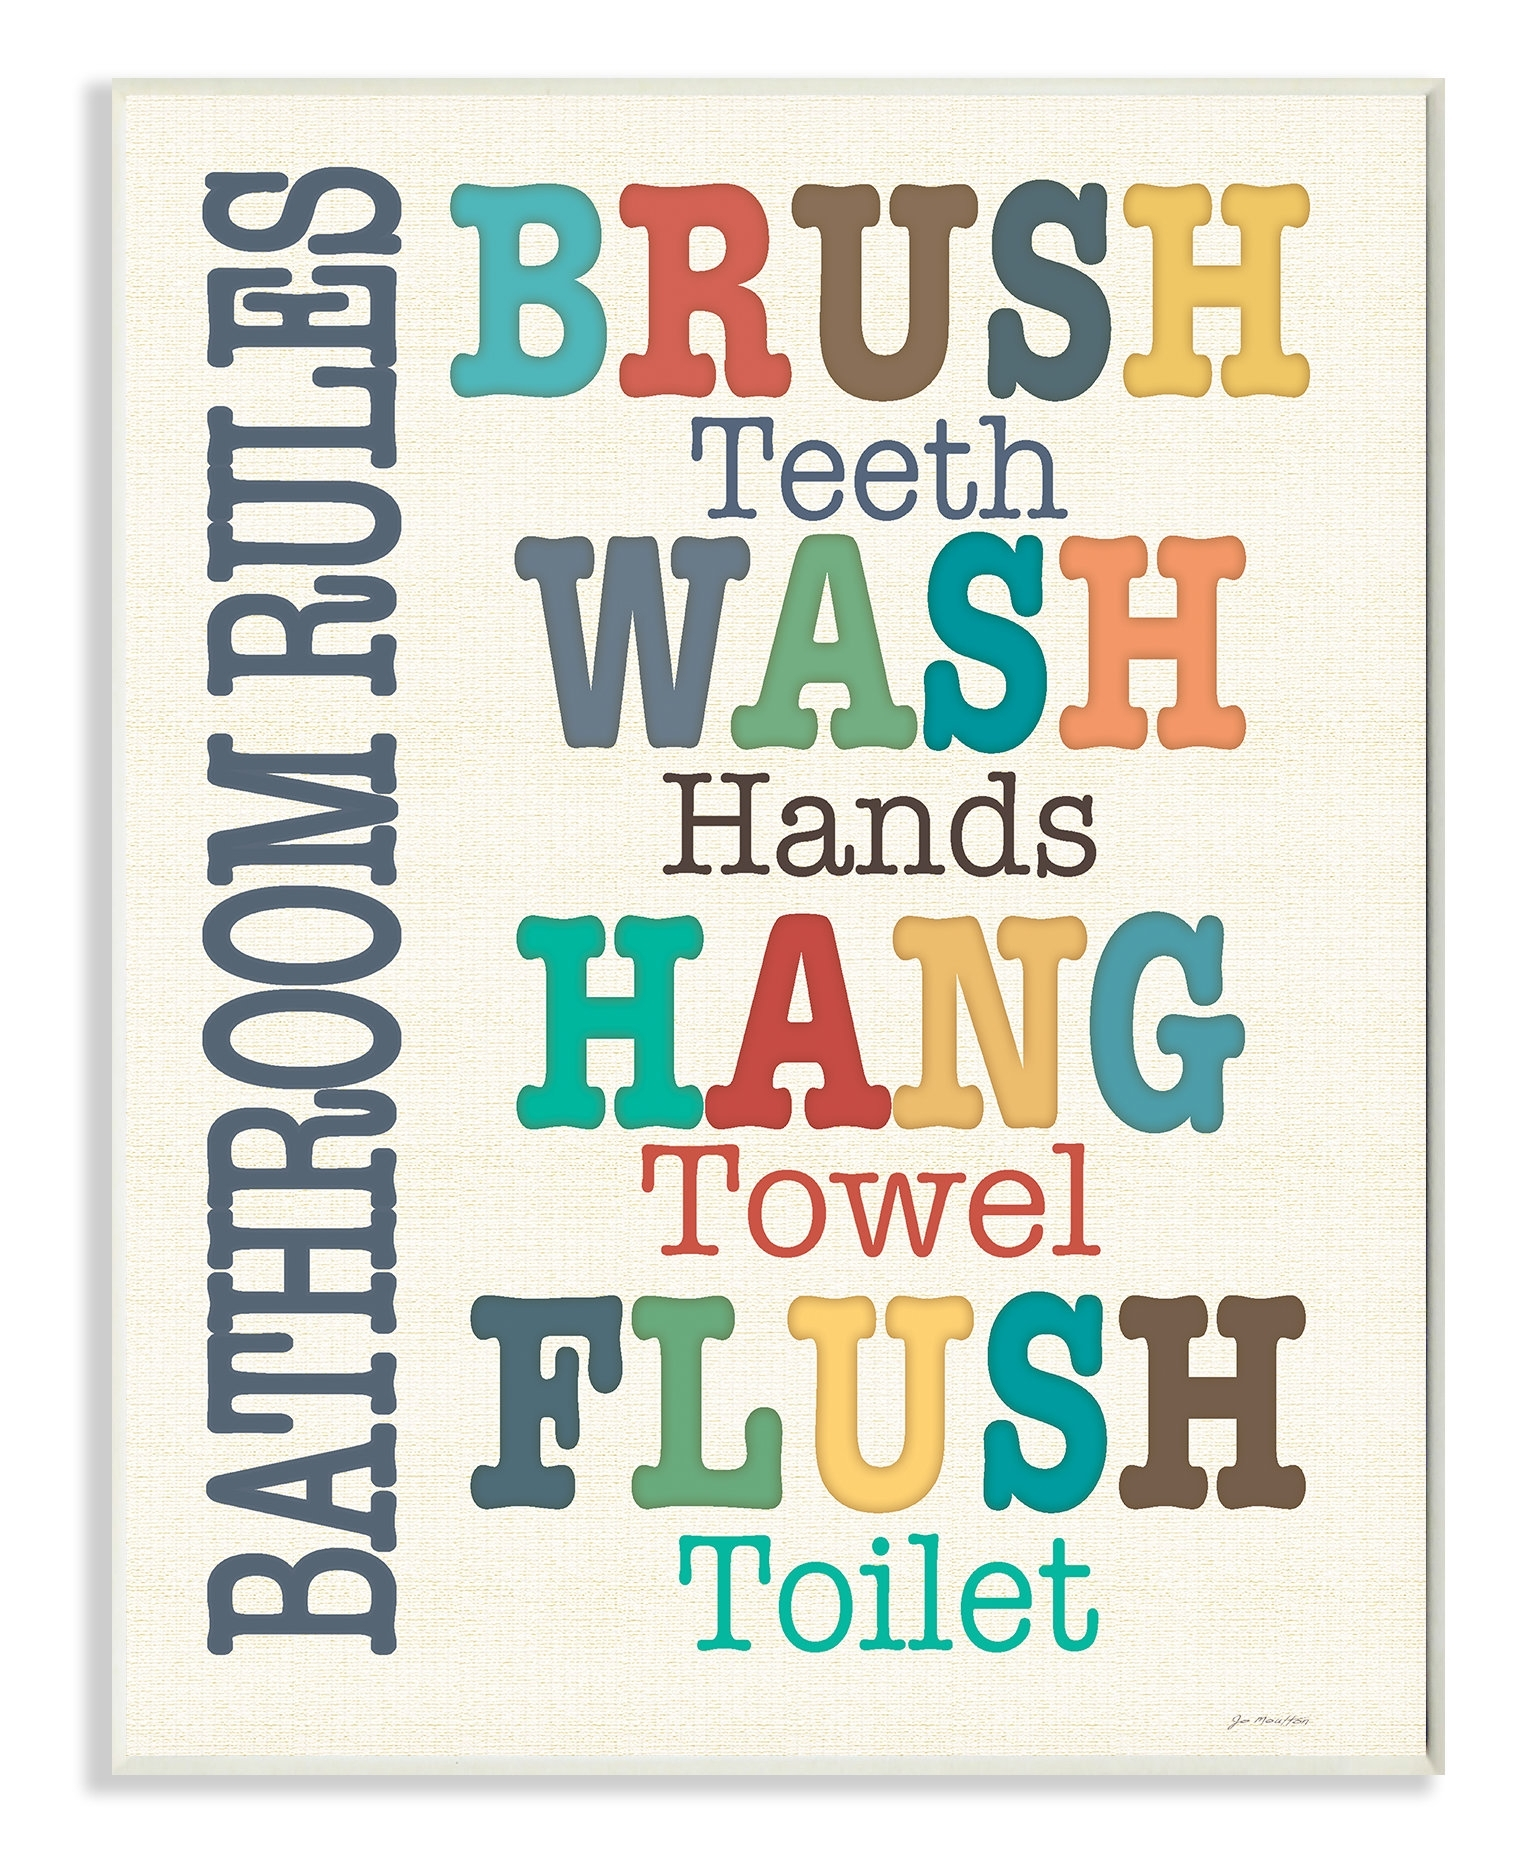 Harriet Bee Wall Plaque 'colorful Bathroom Rules' Textual Art Throughout 2018 Bathroom Rules Wall Art (Gallery 5 of 20)